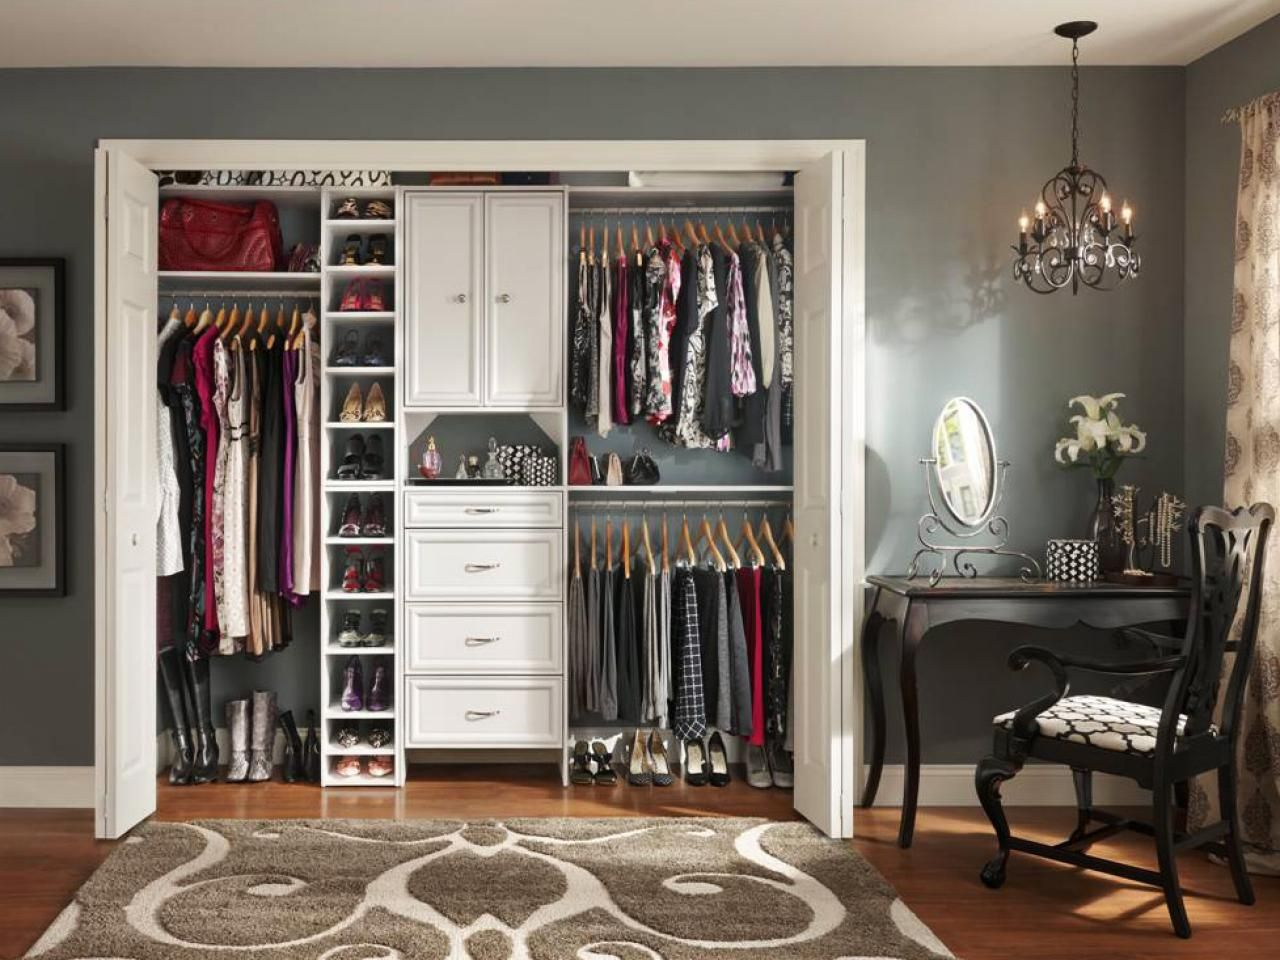 Best 25+ Small Closets Ideas On Pinterest | Small Closet Storage, Small  Closet Organization And Small Closet Design